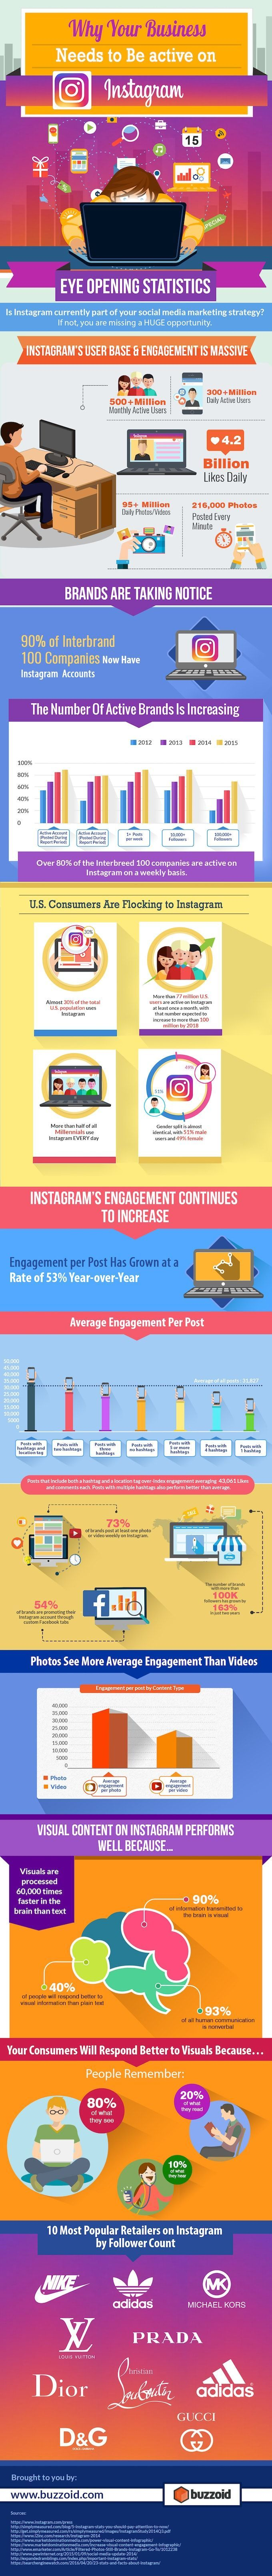 3 Reasons To Add Instagram To Your Marketing Playbook [Infographic]